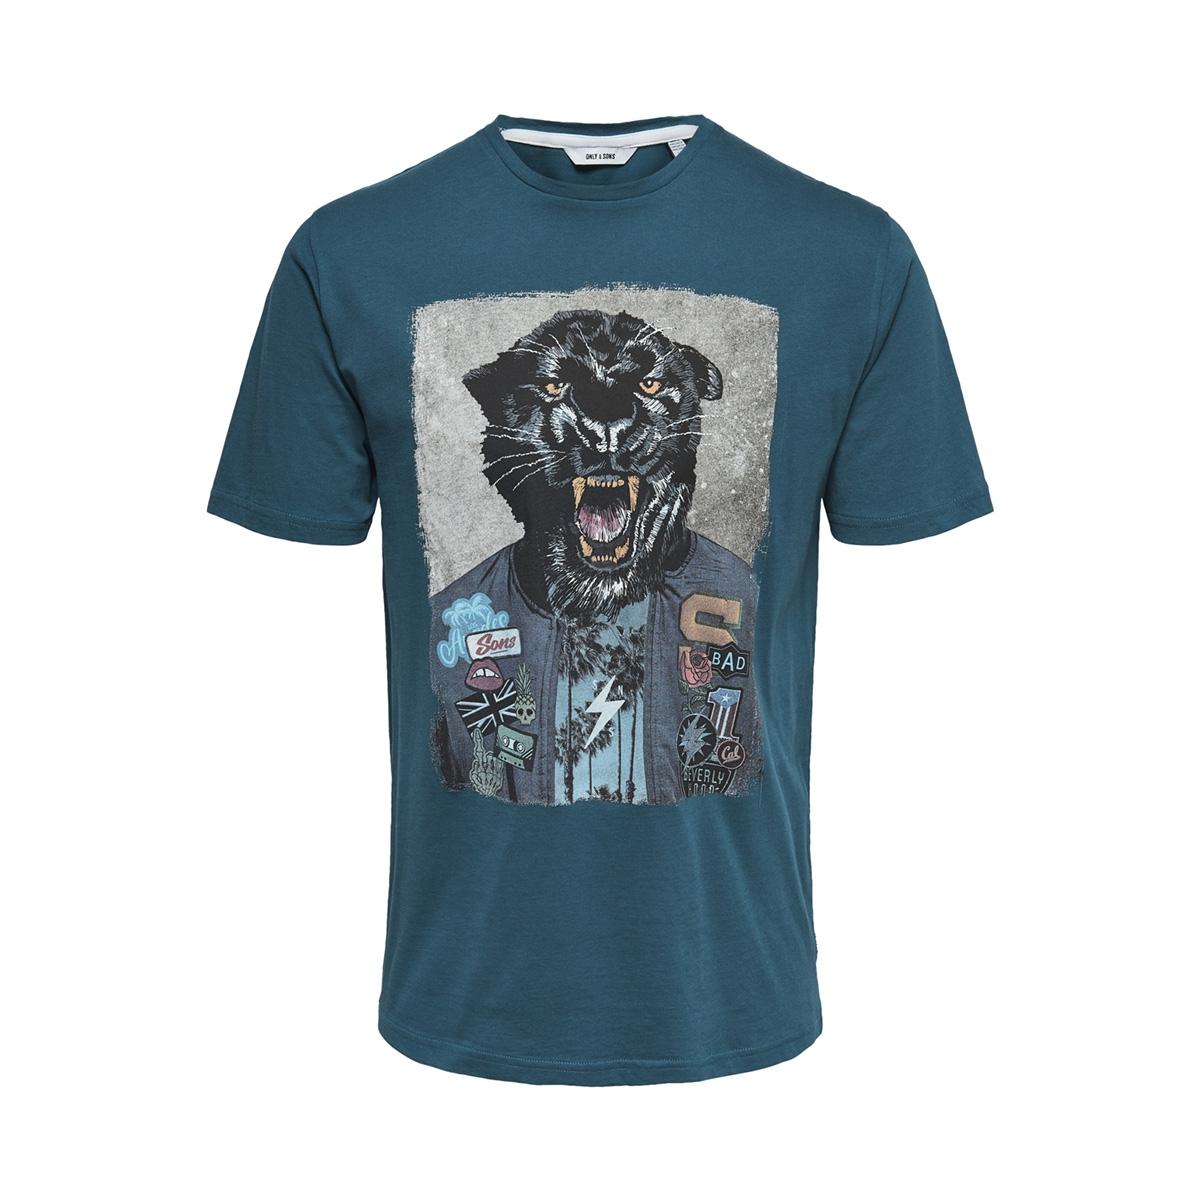 onsloris ss funny tee 22012566 only & sons t-shirt majolica blue